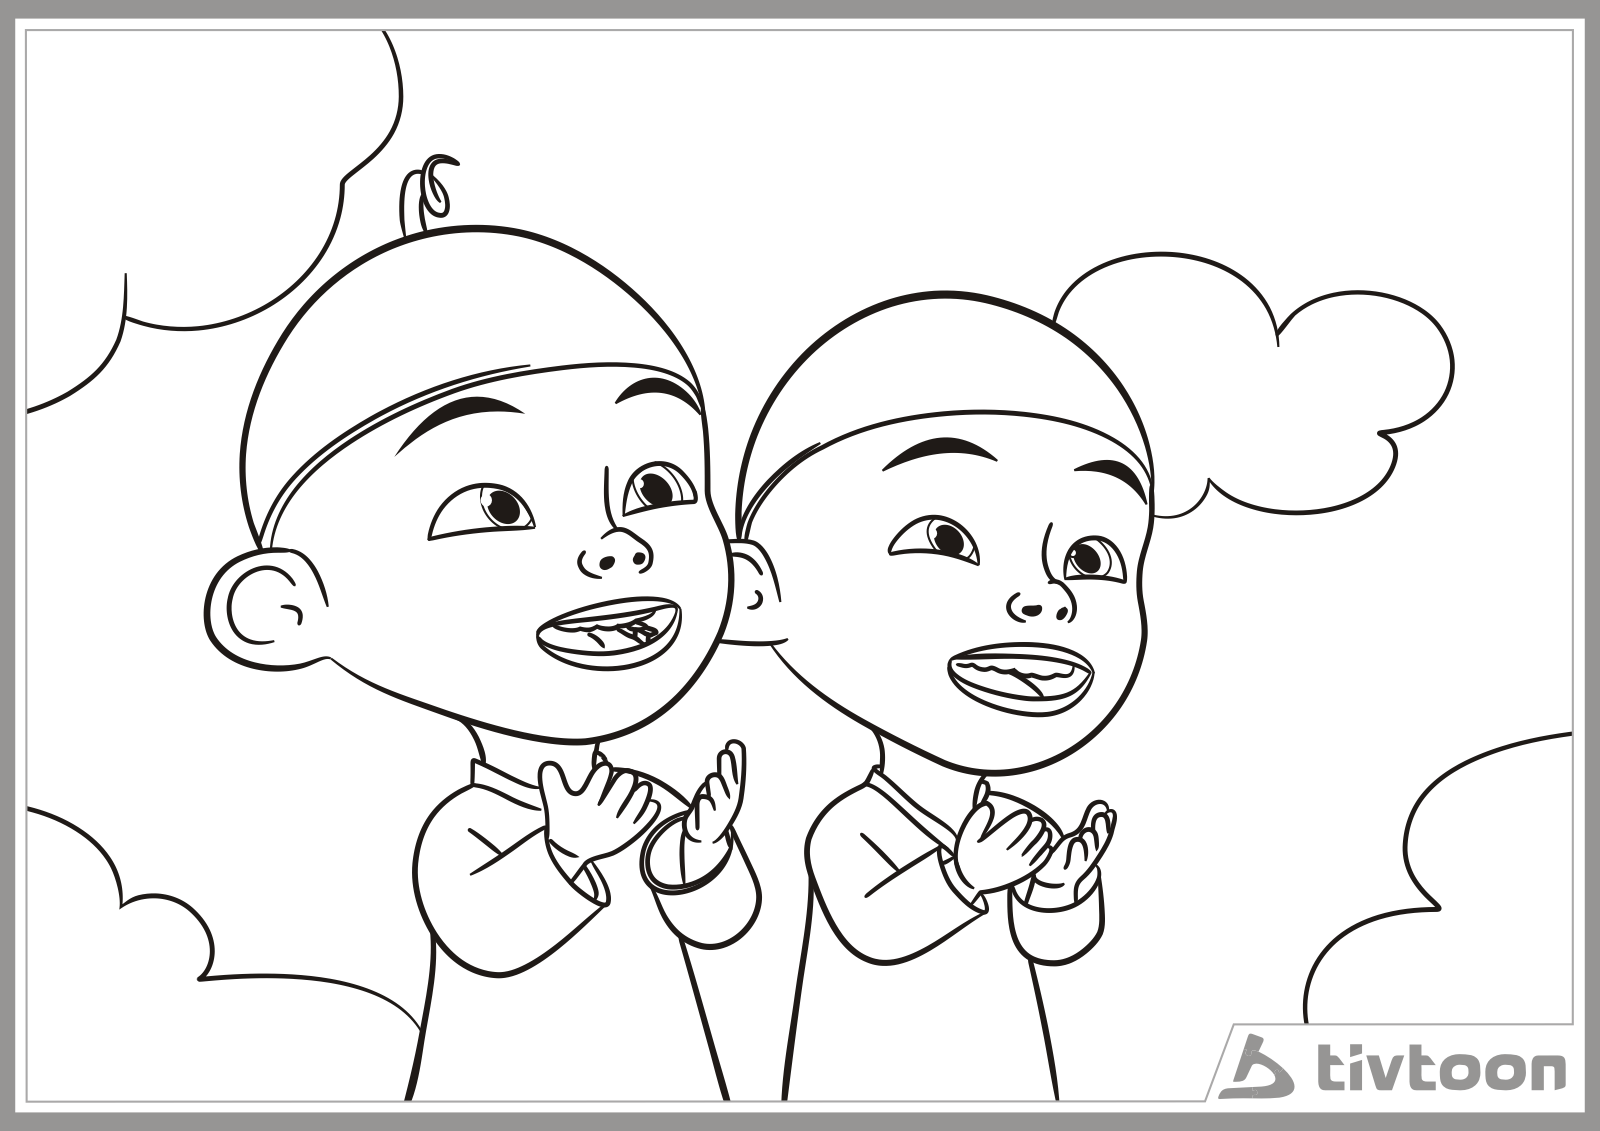 Find this Pin and more on upin ipin by andrianiyulia